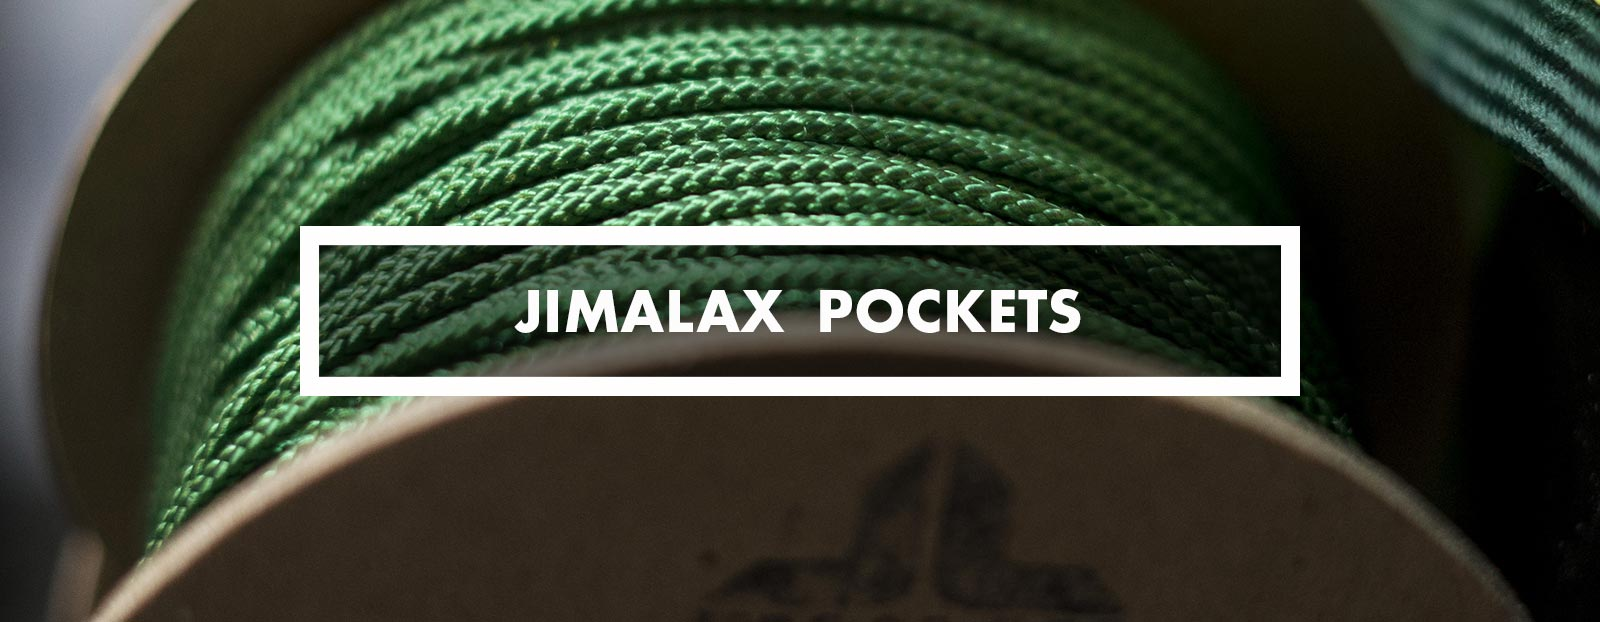 Category - jimalax lacrosse pockets